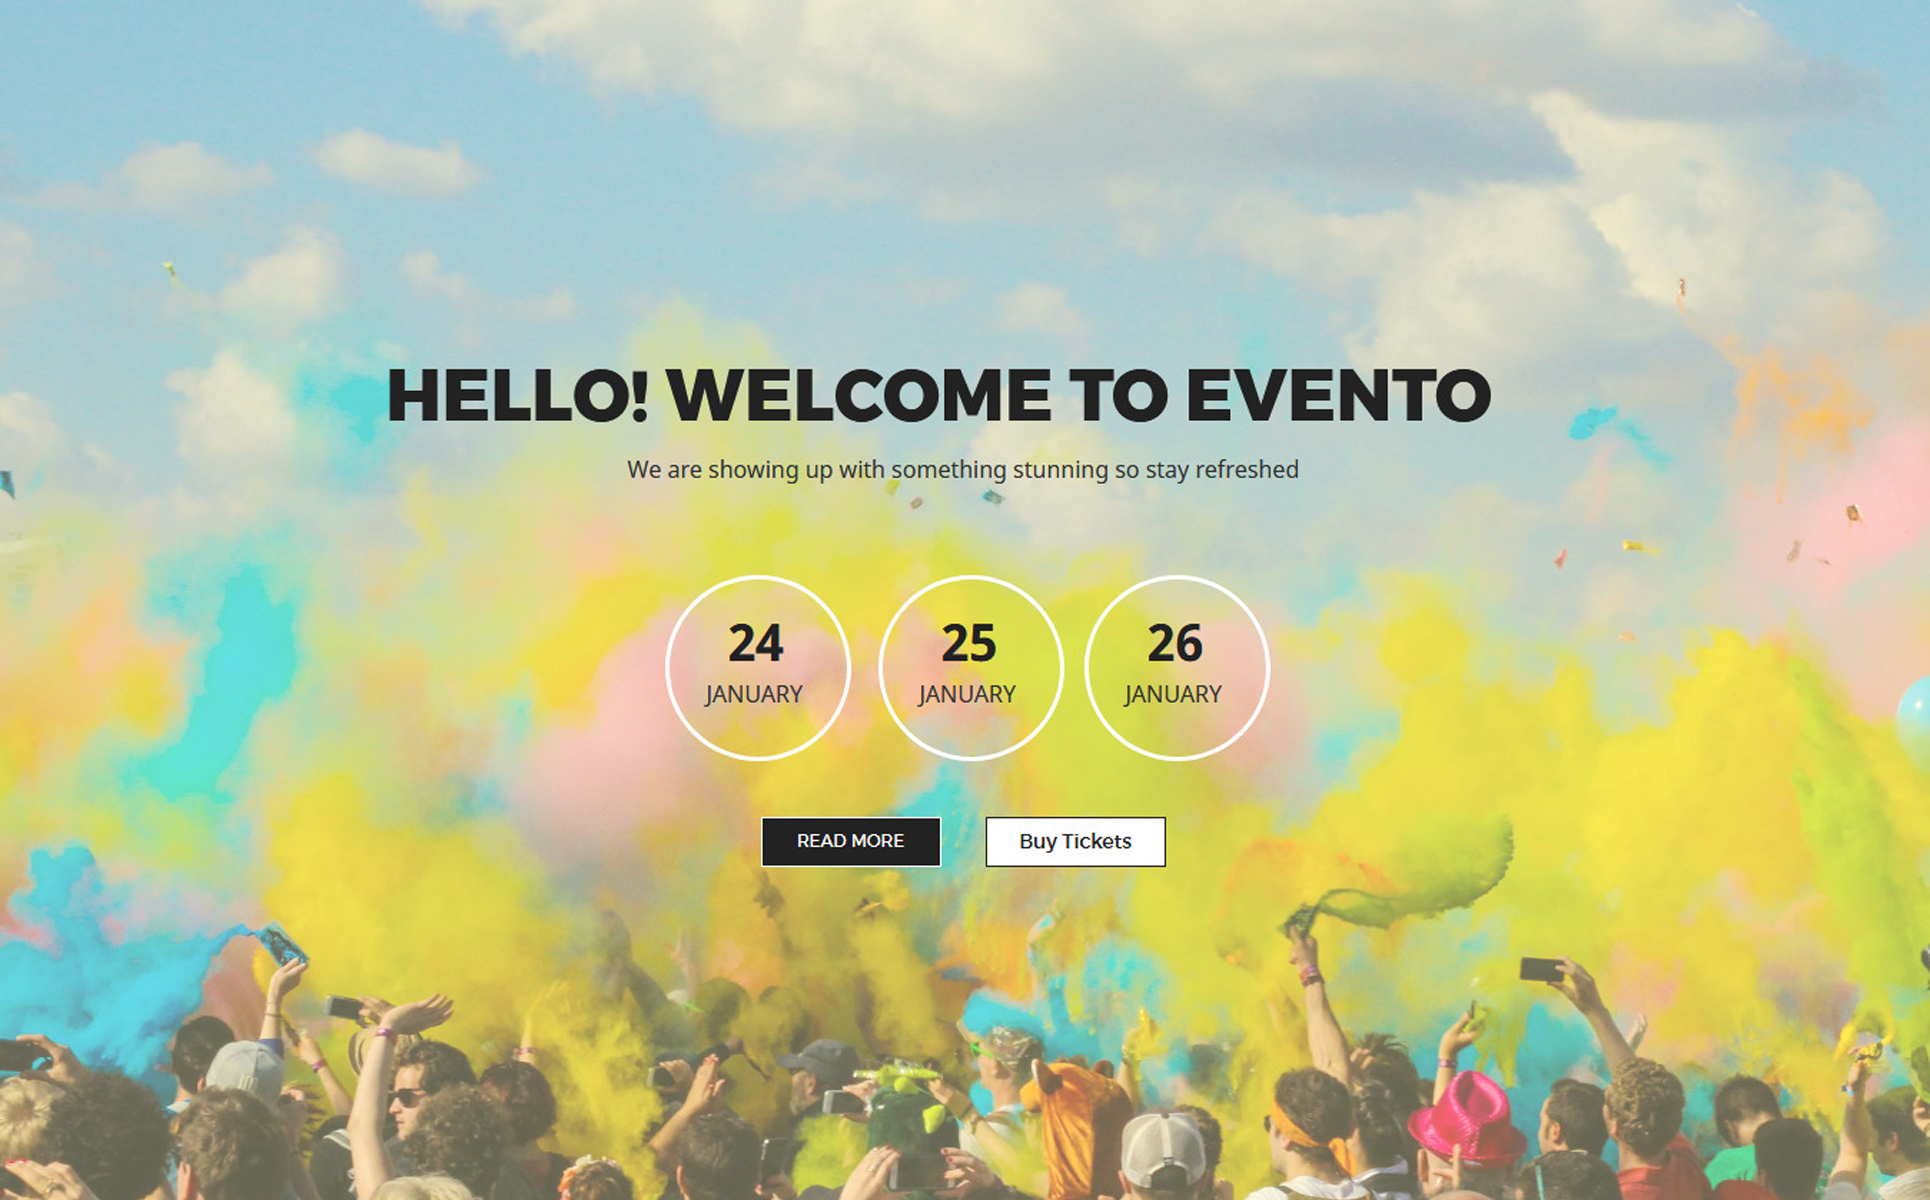 Evento - Concert Events Unbounce Template